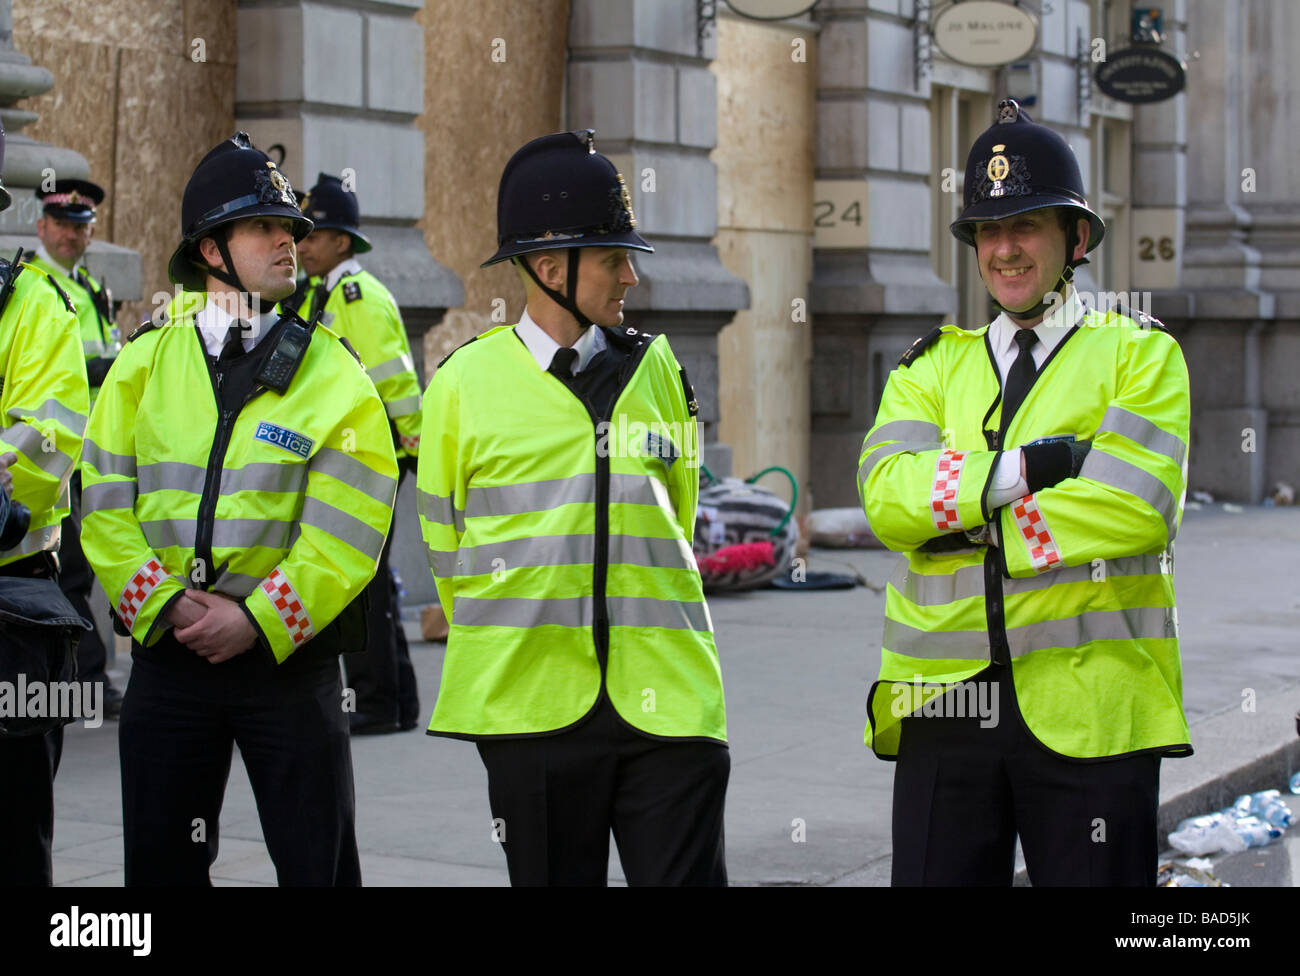 City of London Police - G20 summit protests - Stock Image